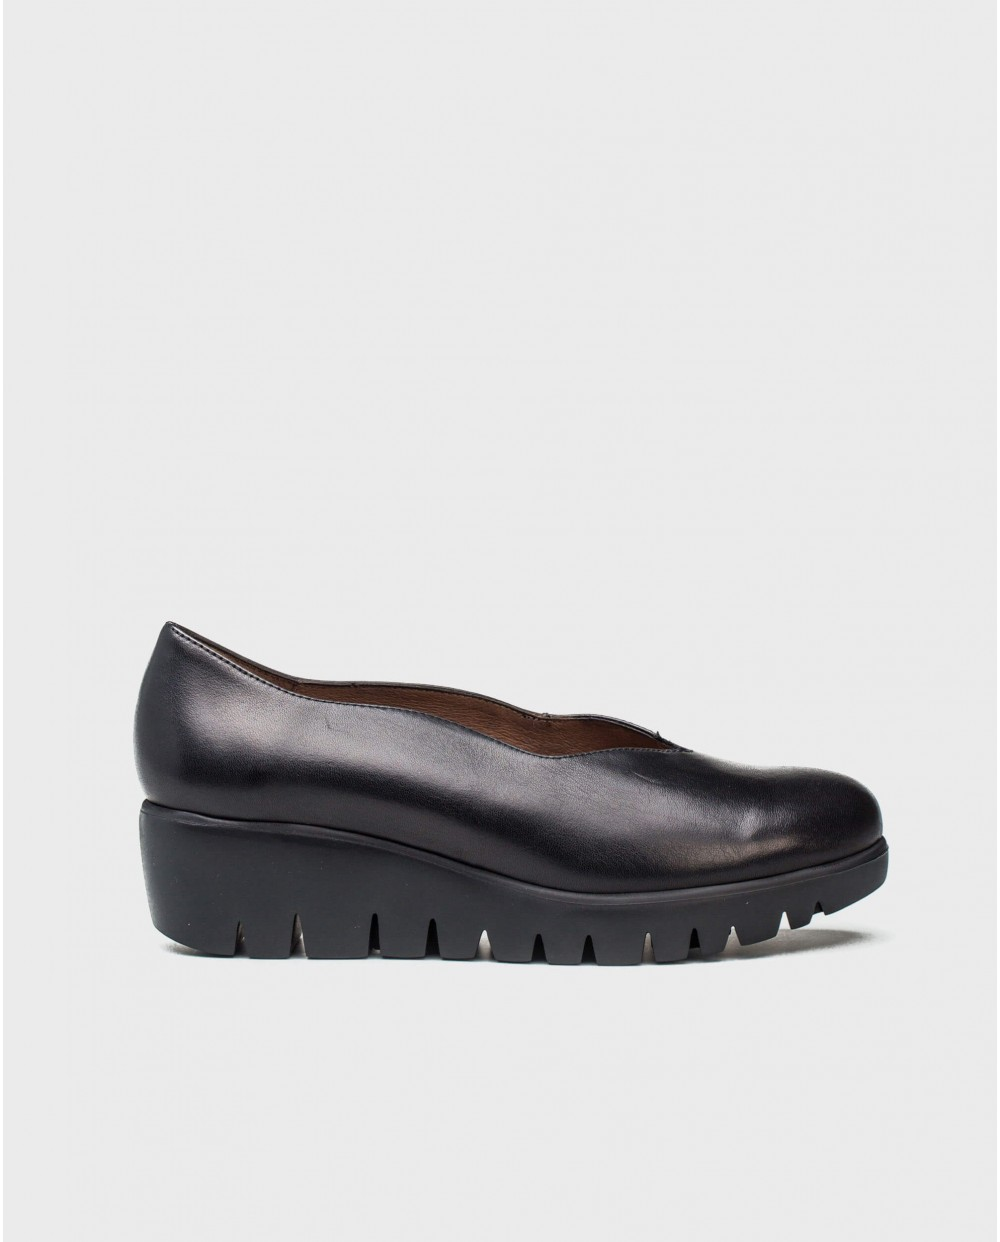 Wonders-Wedges-Leather moccasins